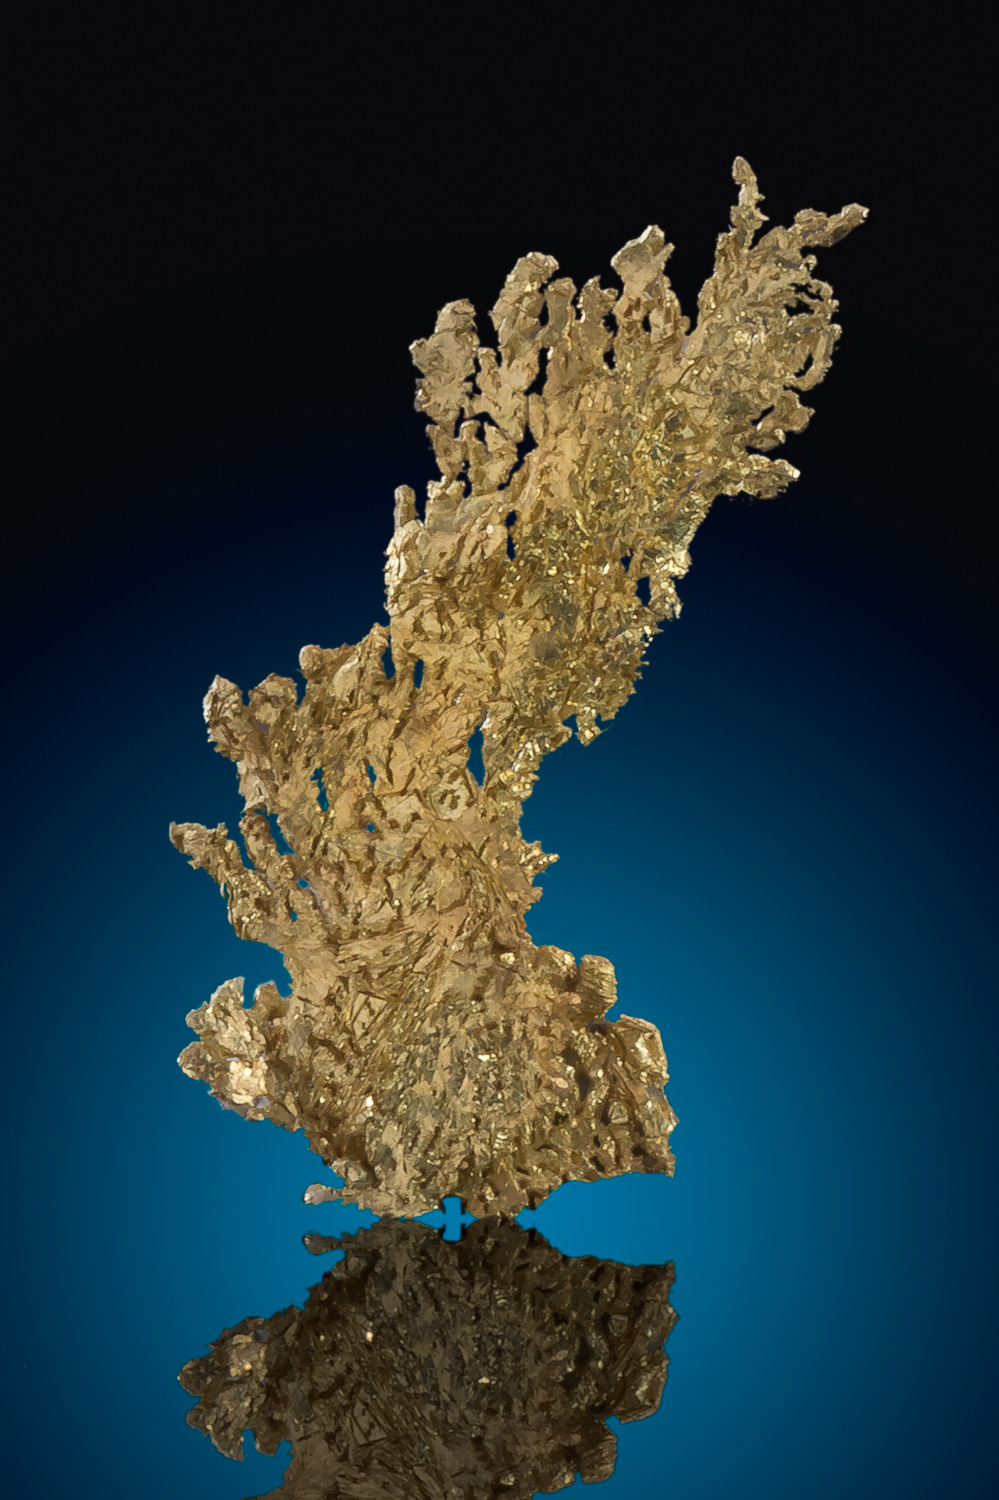 Dendritic Leaf Gold Specimen from Round Mountain